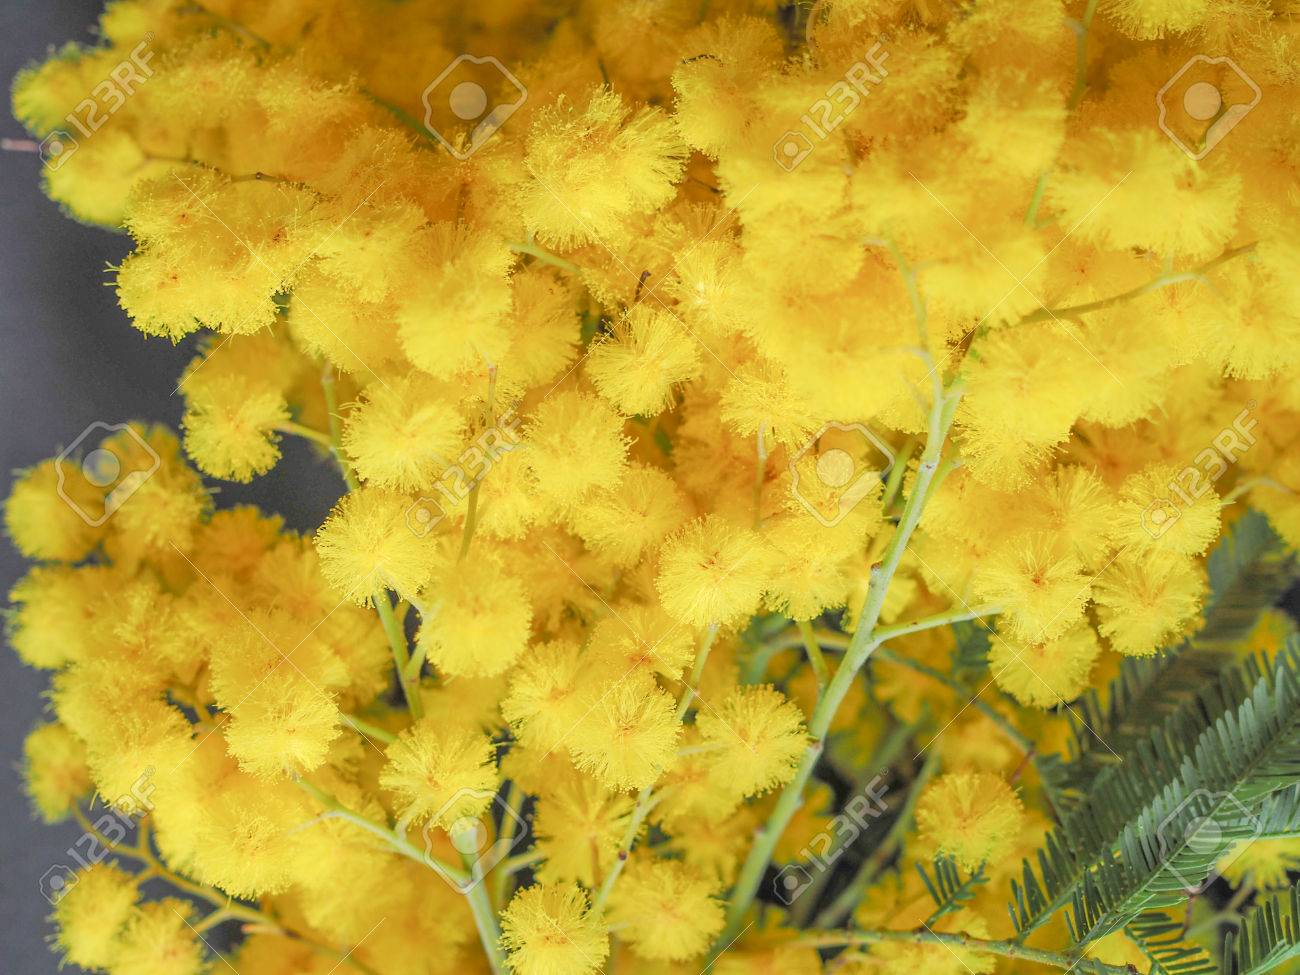 Yellow mimosa flowers of acacia dealbata plant aka silver wattle stock photo yellow mimosa flowers of acacia dealbata plant aka silver wattle blue wattle flower plant mightylinksfo